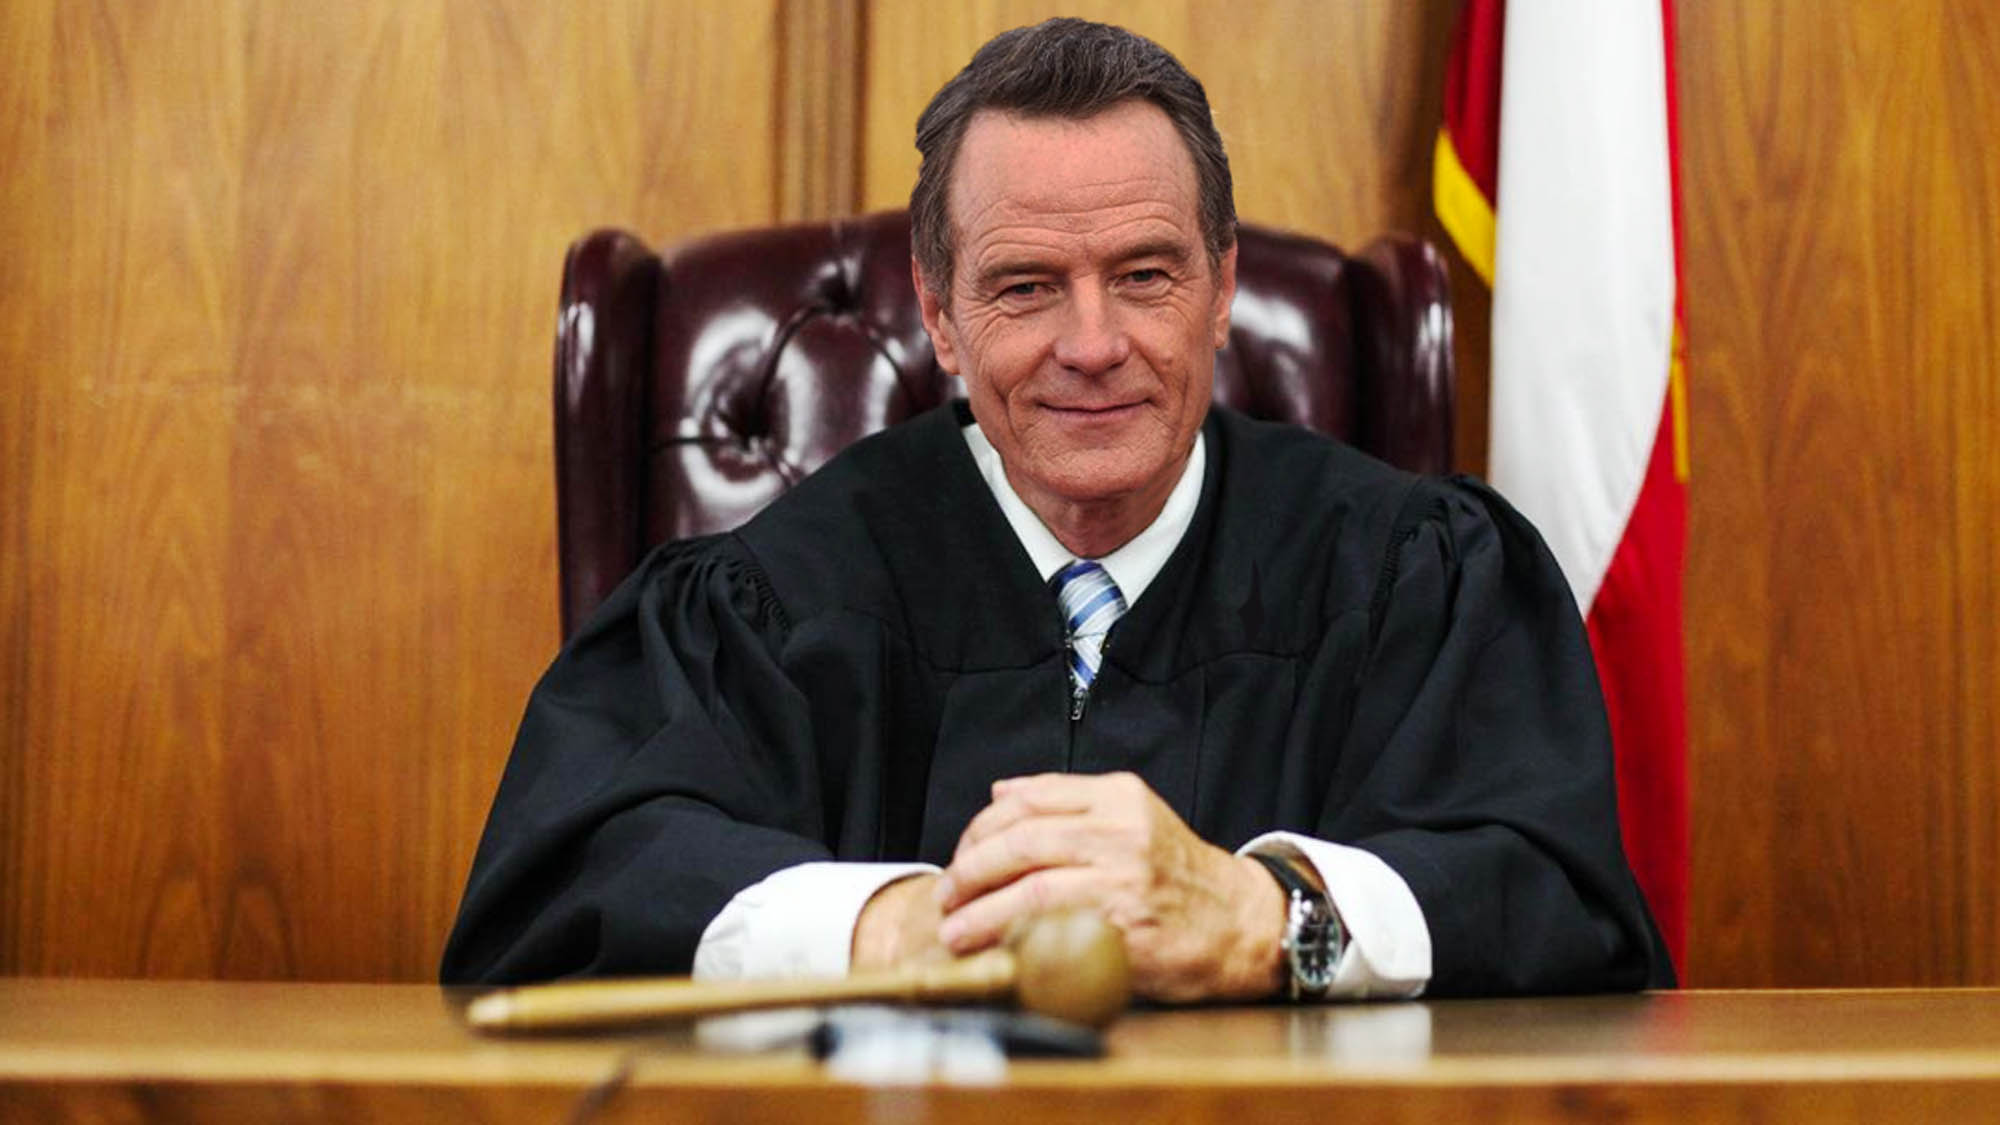 https://www.malcolm-france.com/wp-content/uploads/bryan-cranston_your-honor_showtime.jpg